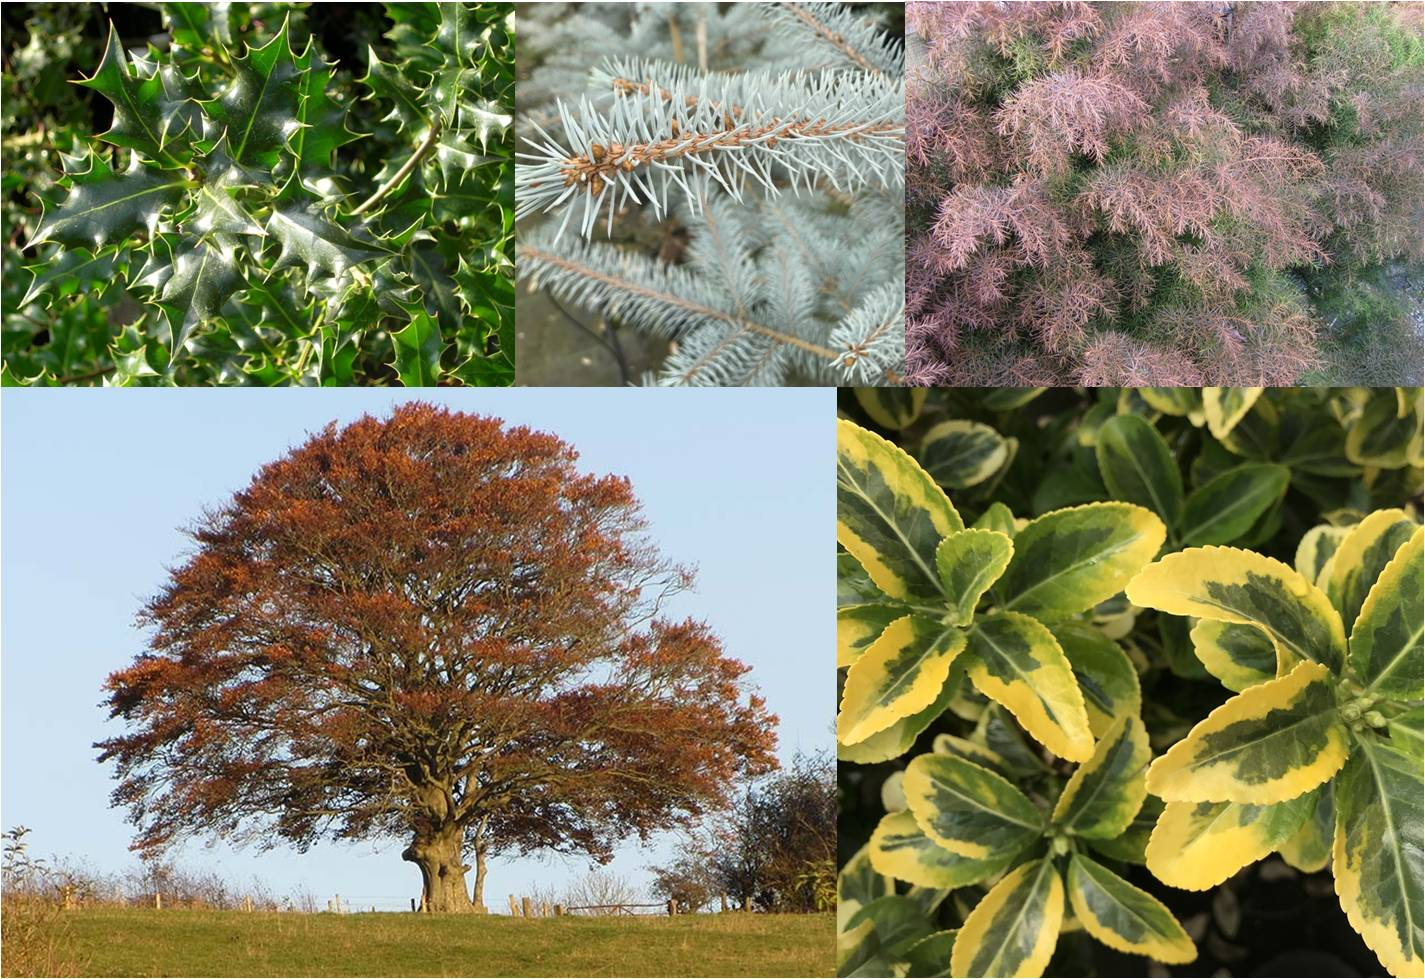 Clockwise from top left: common holly, Colorado blue spruce, Japanese red cedar, Japanese spindle 'Aureus', beech